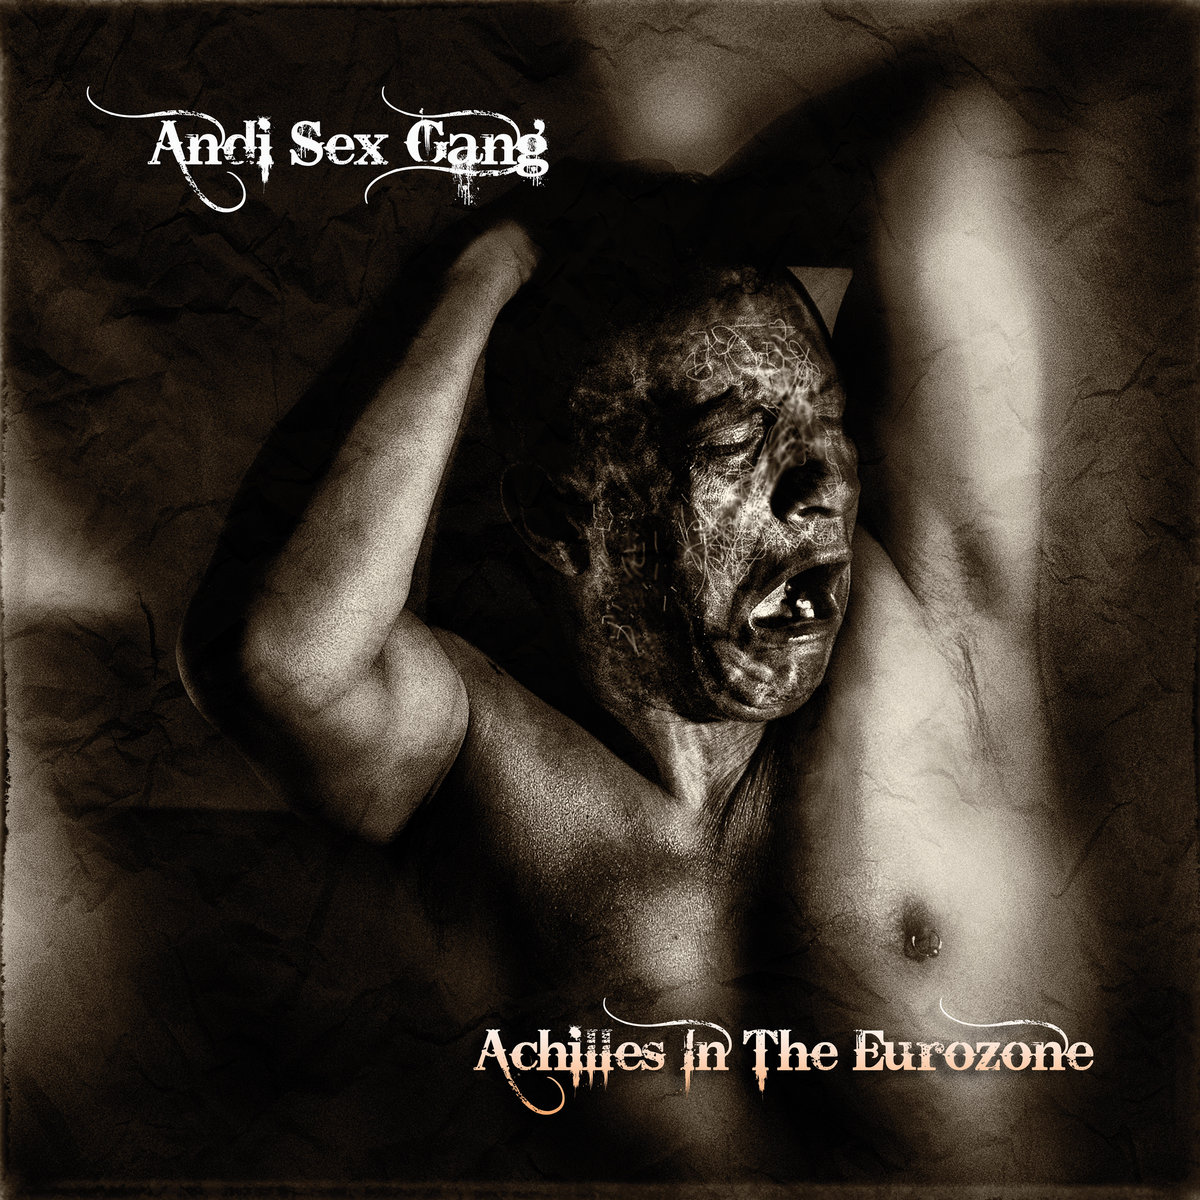 Andi sex gang and downloads